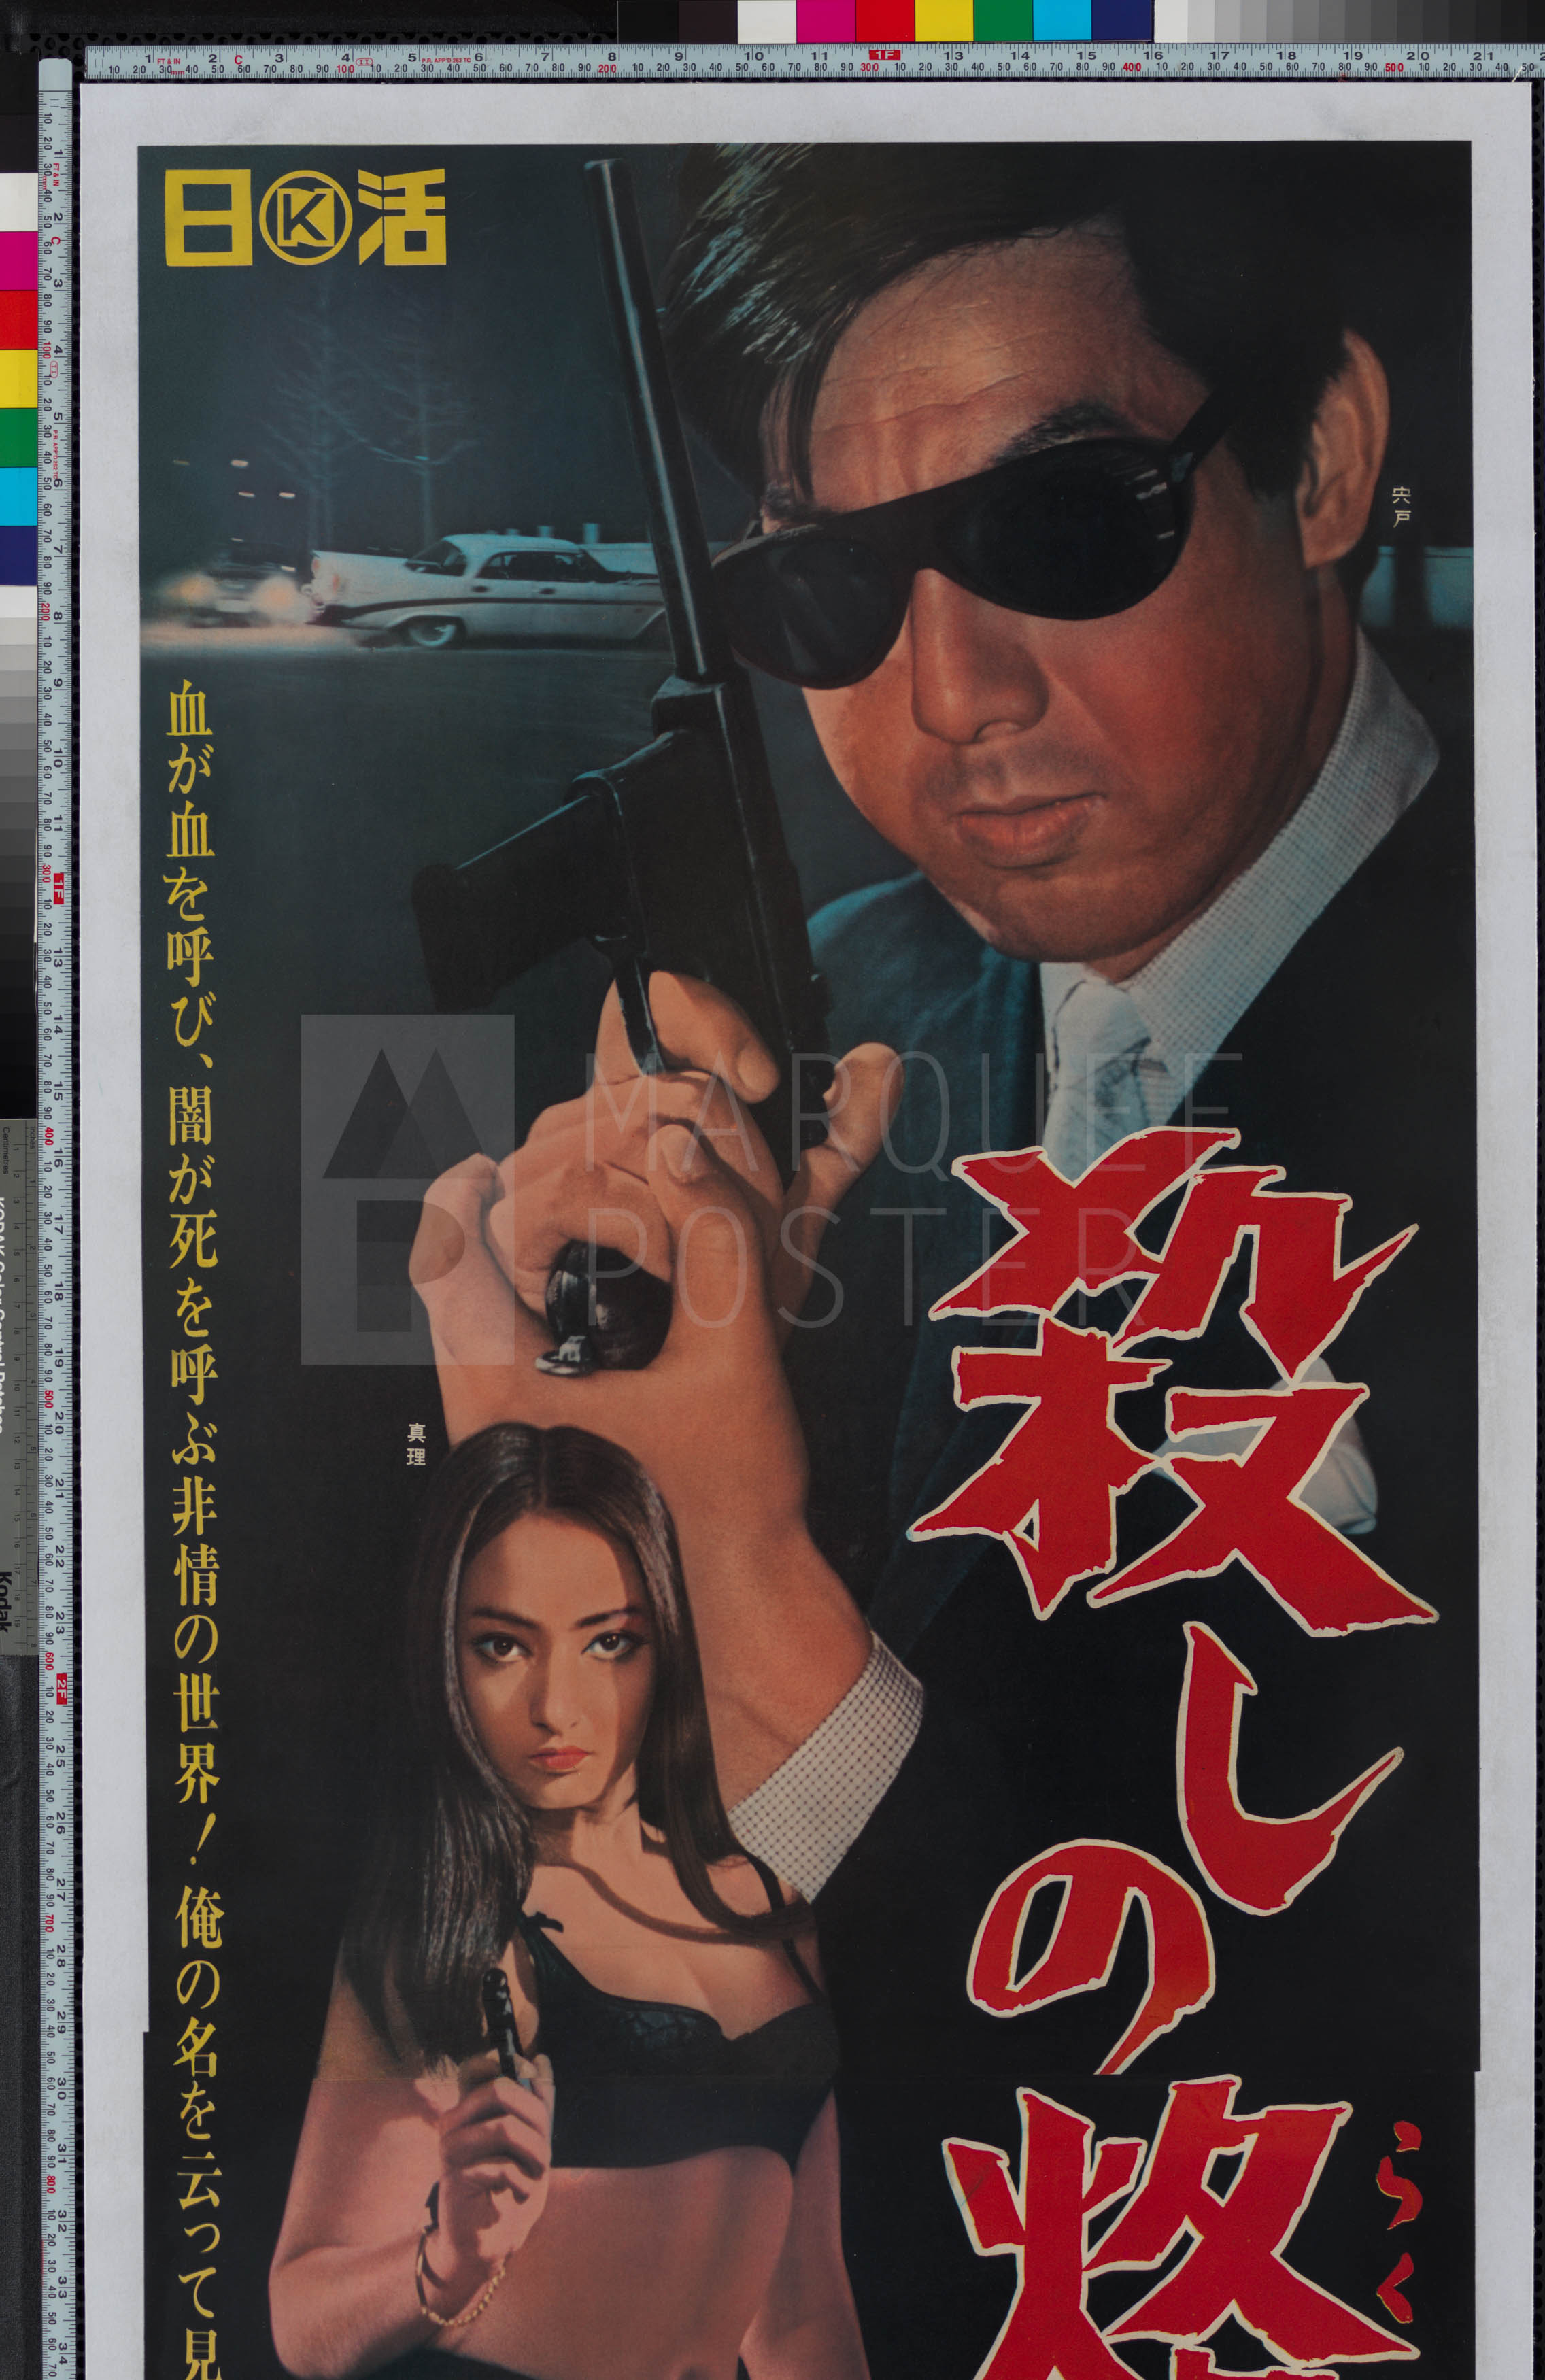 1-branded-to-kill-japanese-stb-1967-02